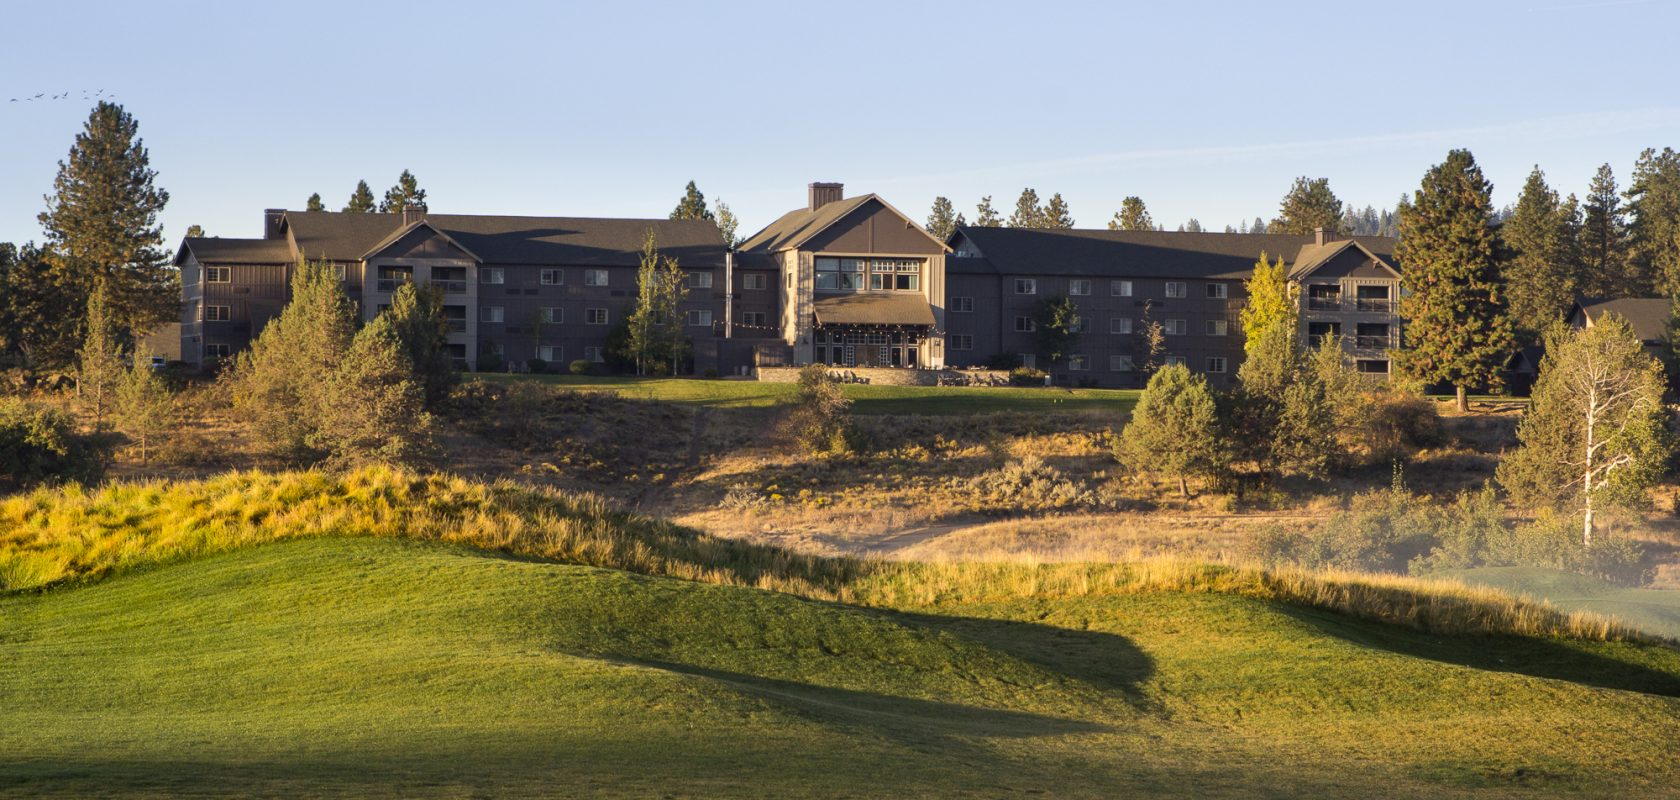 Hotels In Klamath Falls Ca